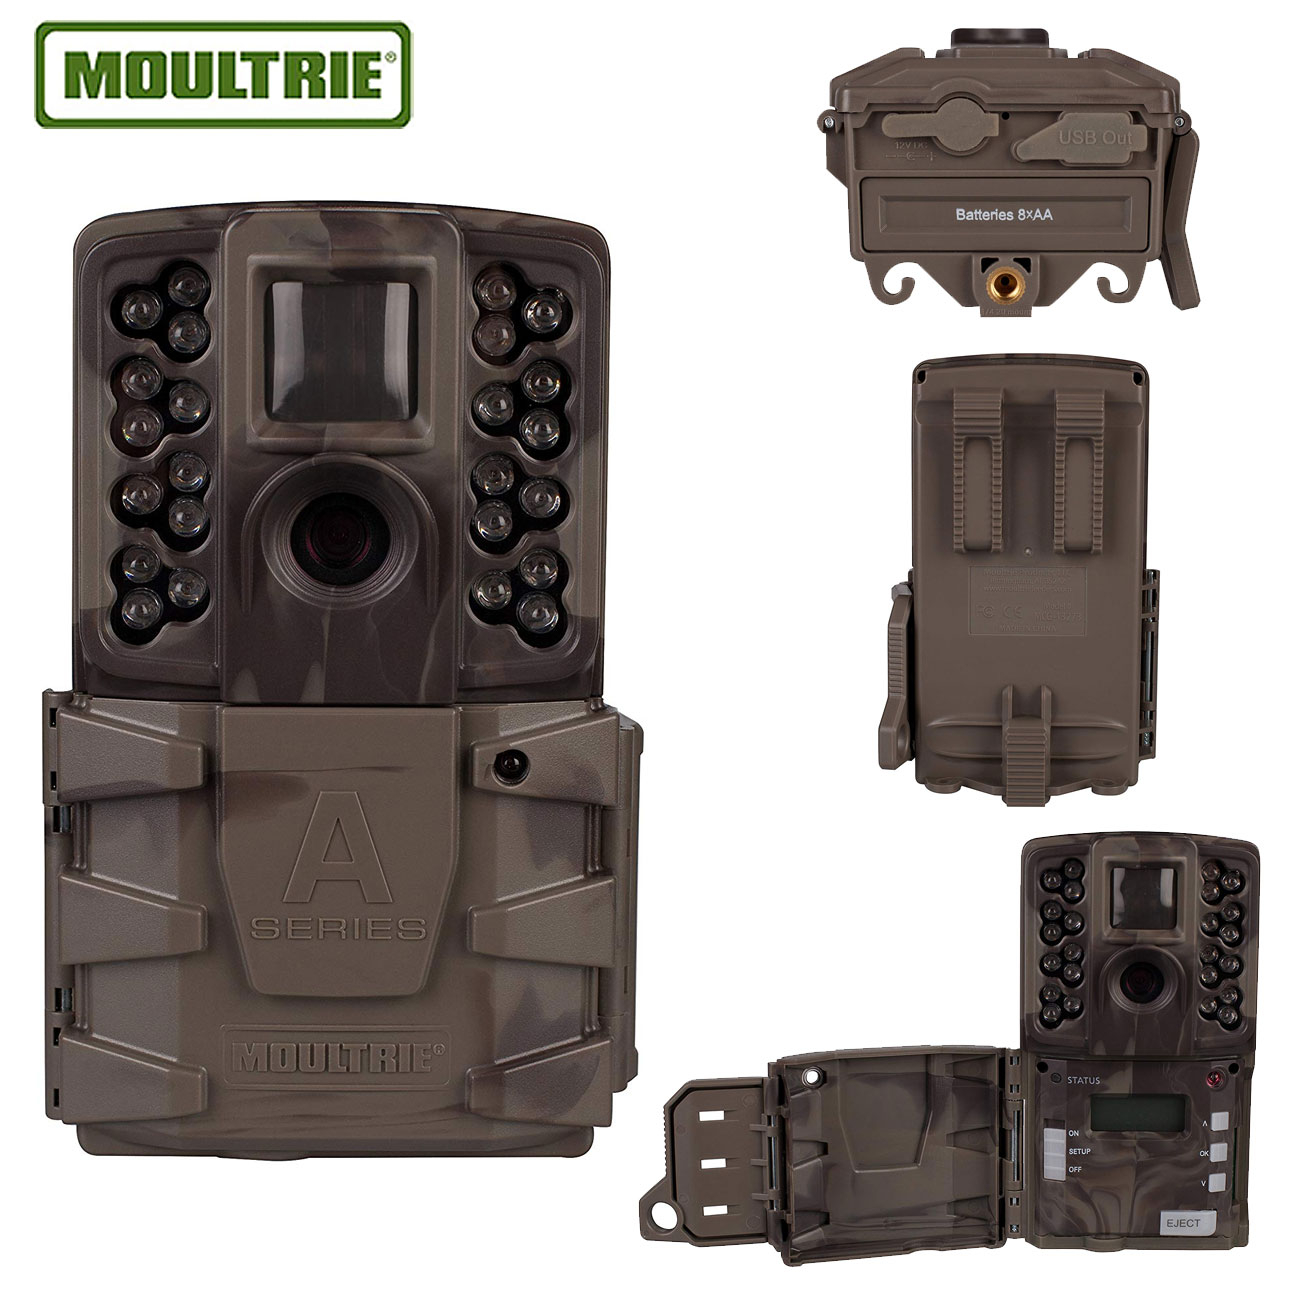 Moultrie A-40 Pro Game Camera - Smoke Screen Camo